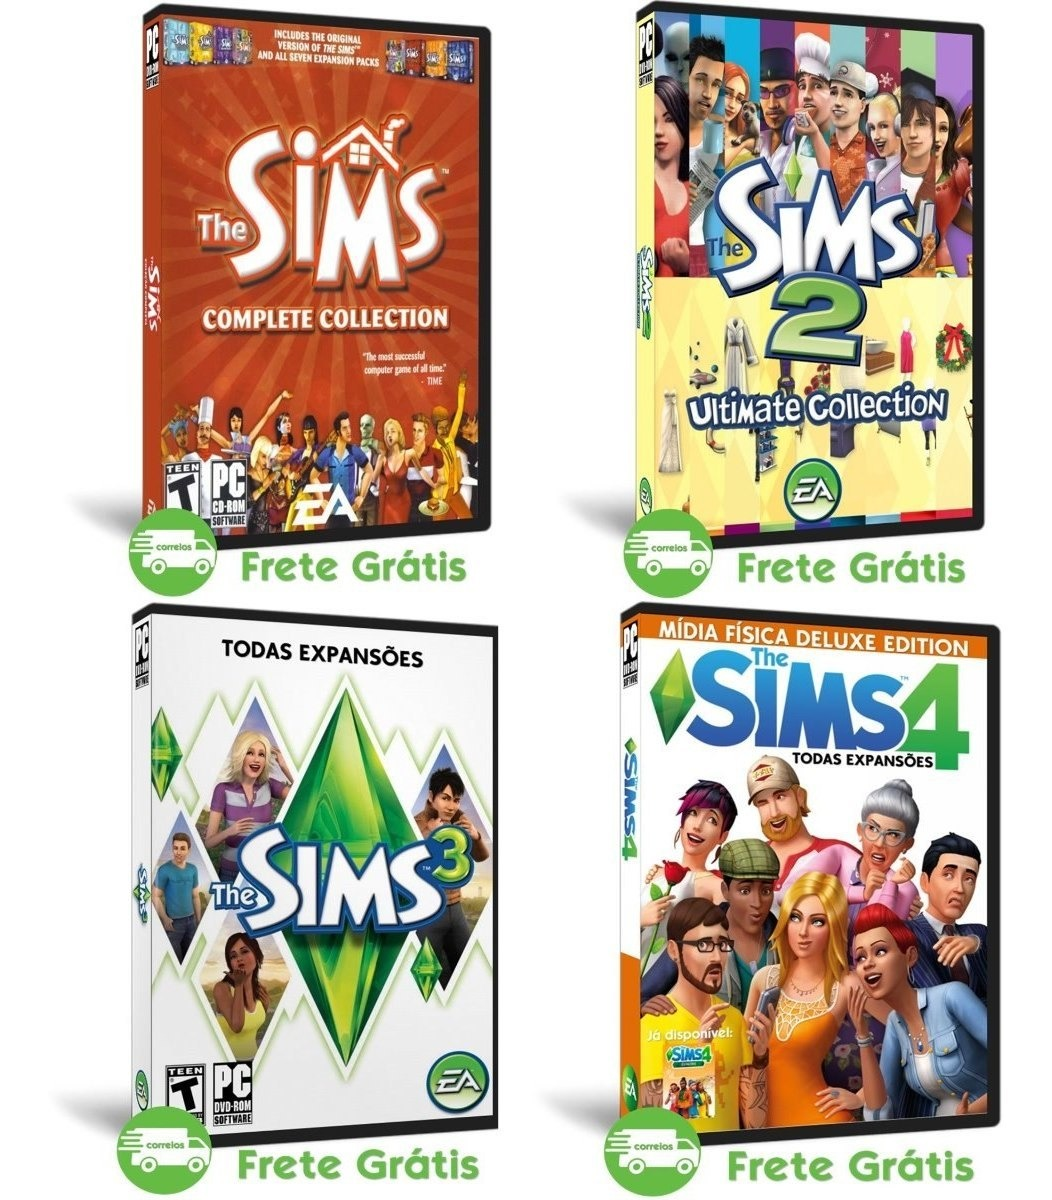 the sims 2 download completo todas as expansoes